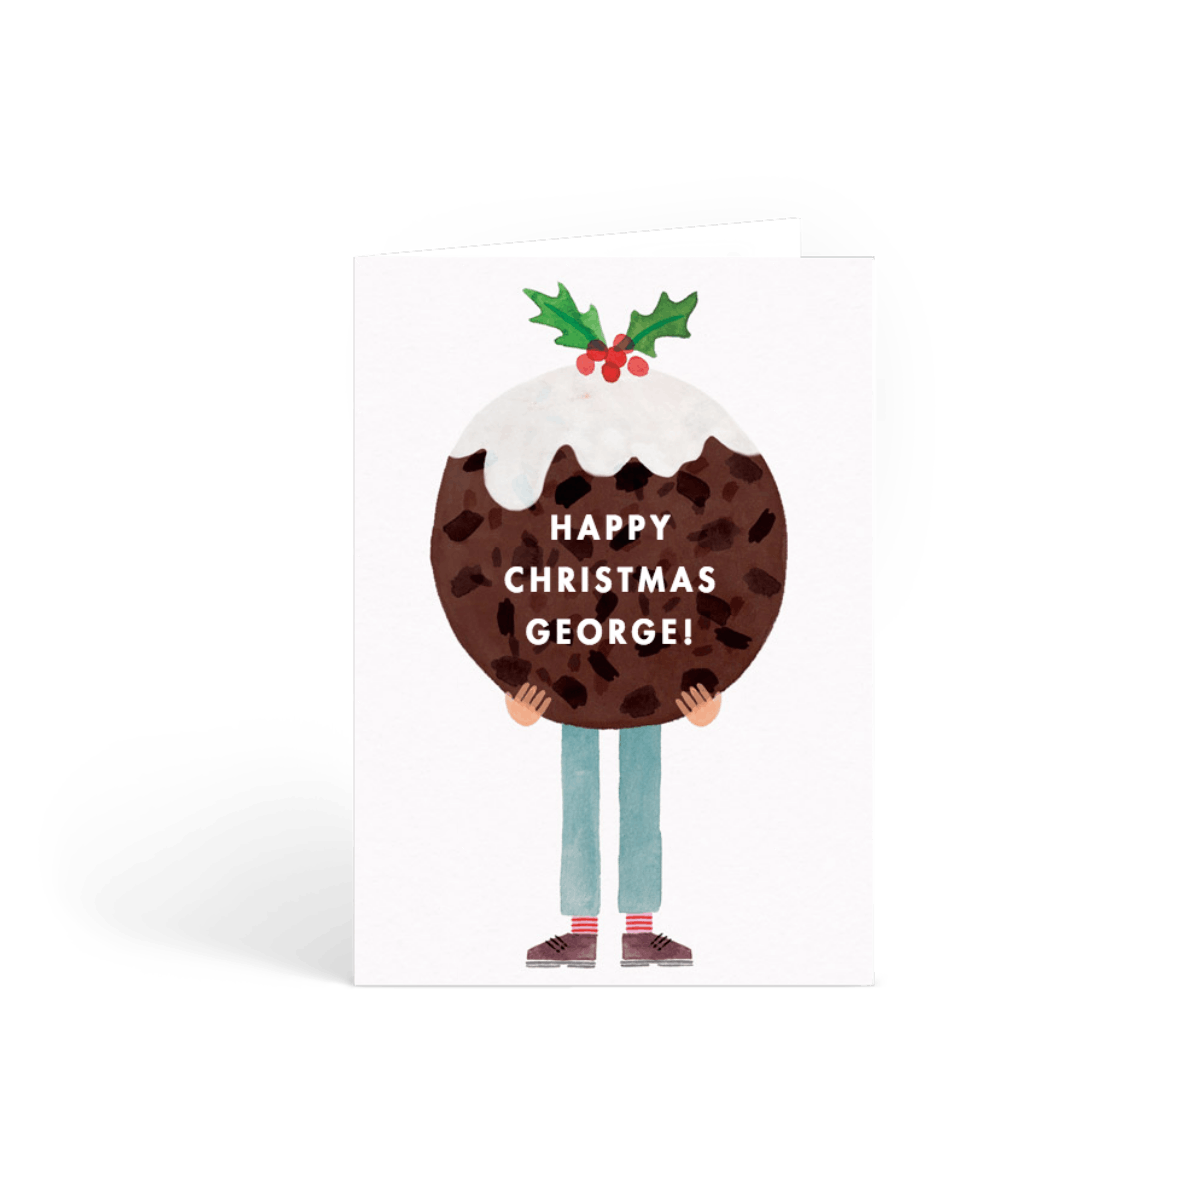 Https%3a%2f%2fwww.papier.com%2fproduct image%2f8493%2f2%2fchristmas pudding boy 2105 avant 1476092907.png?ixlib=rb 1.1